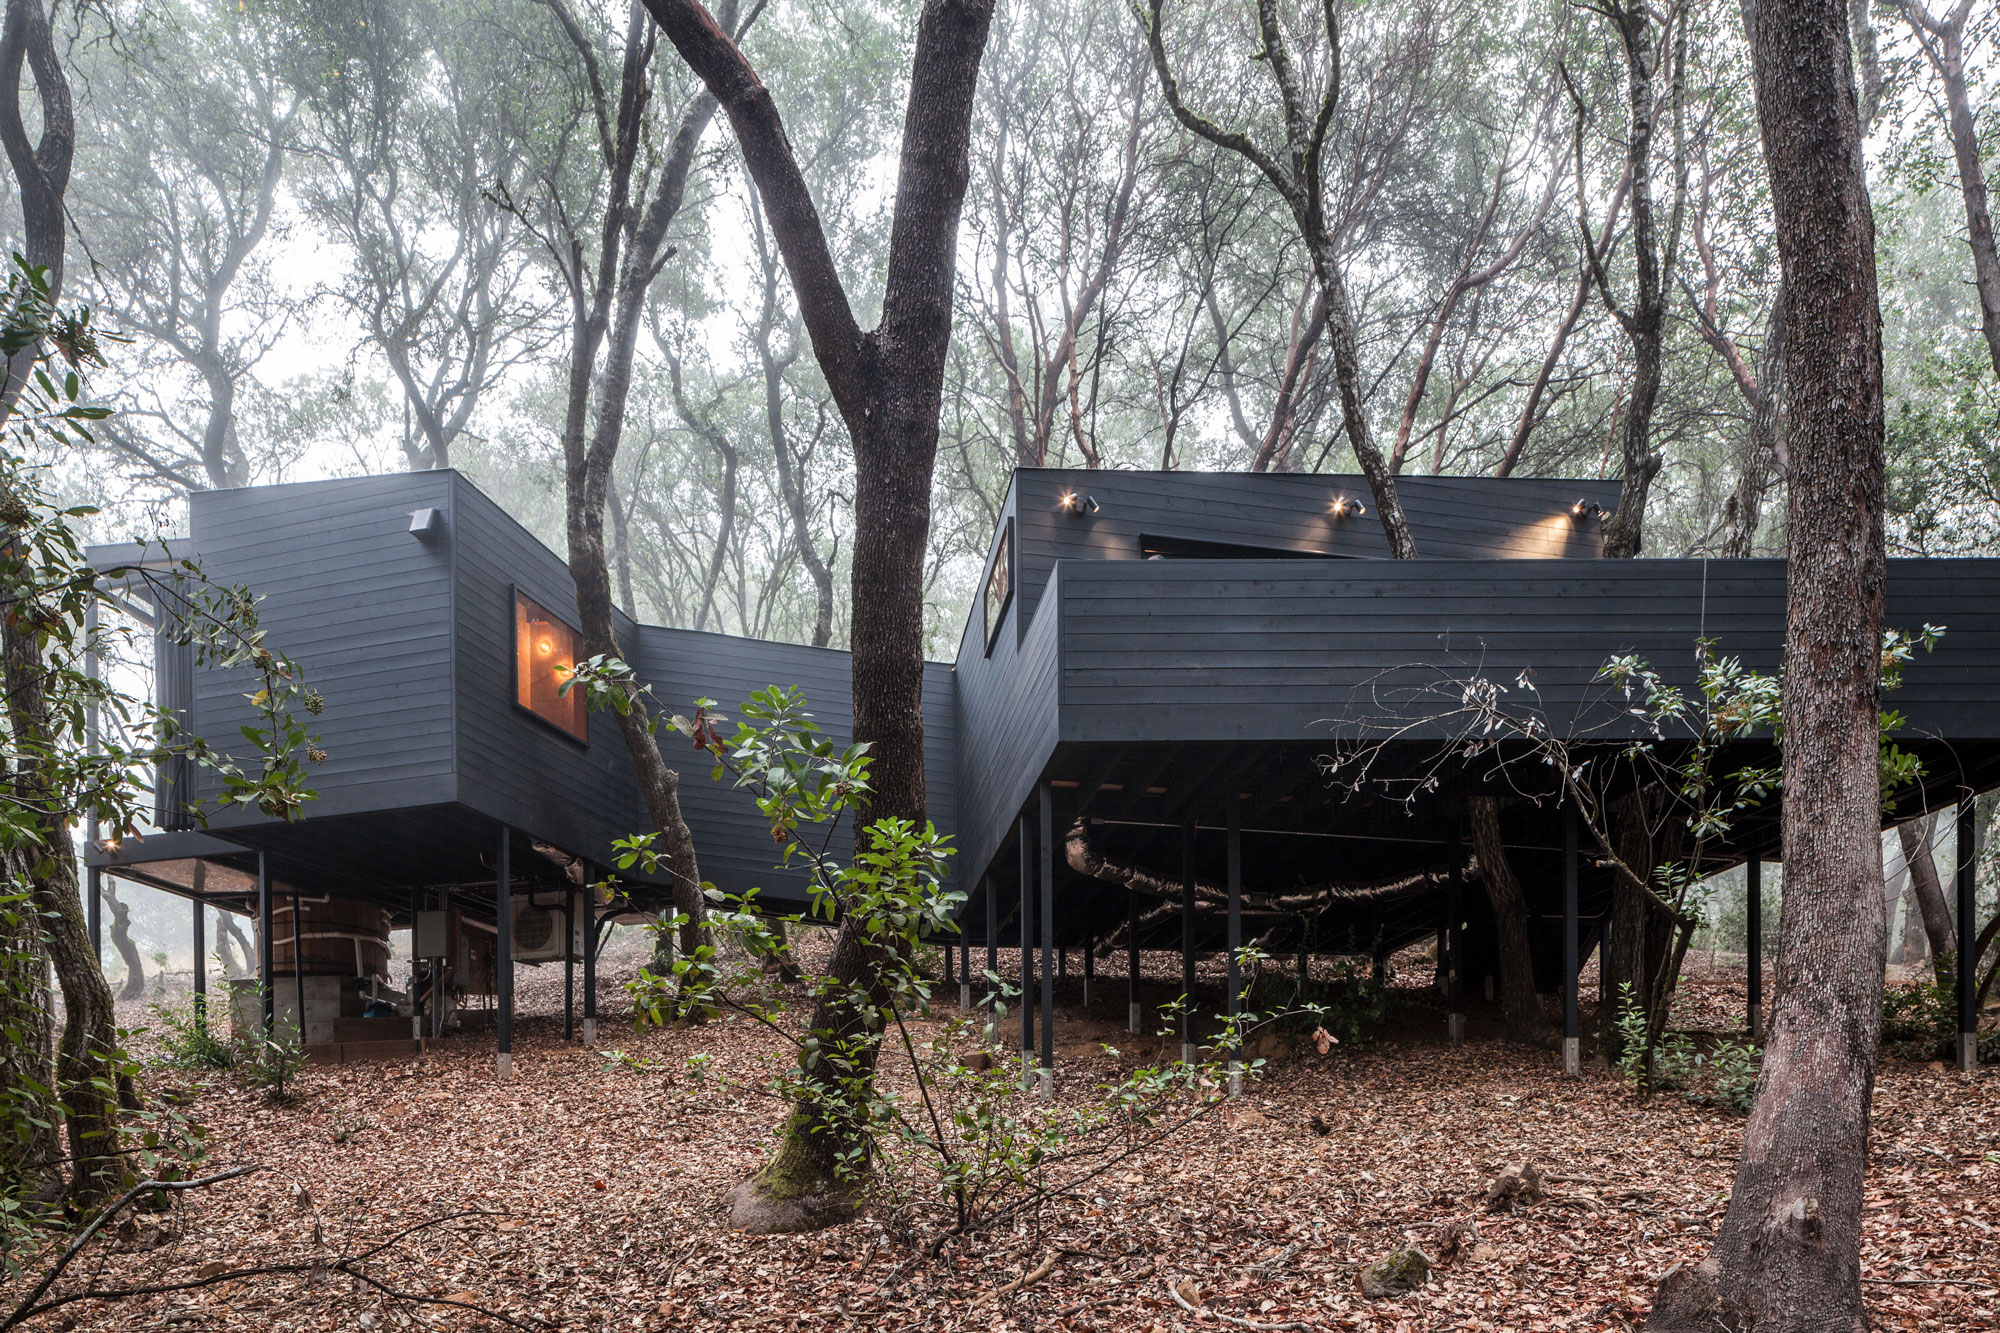 Forest House A Cluster Of Interconnected Cabins In The